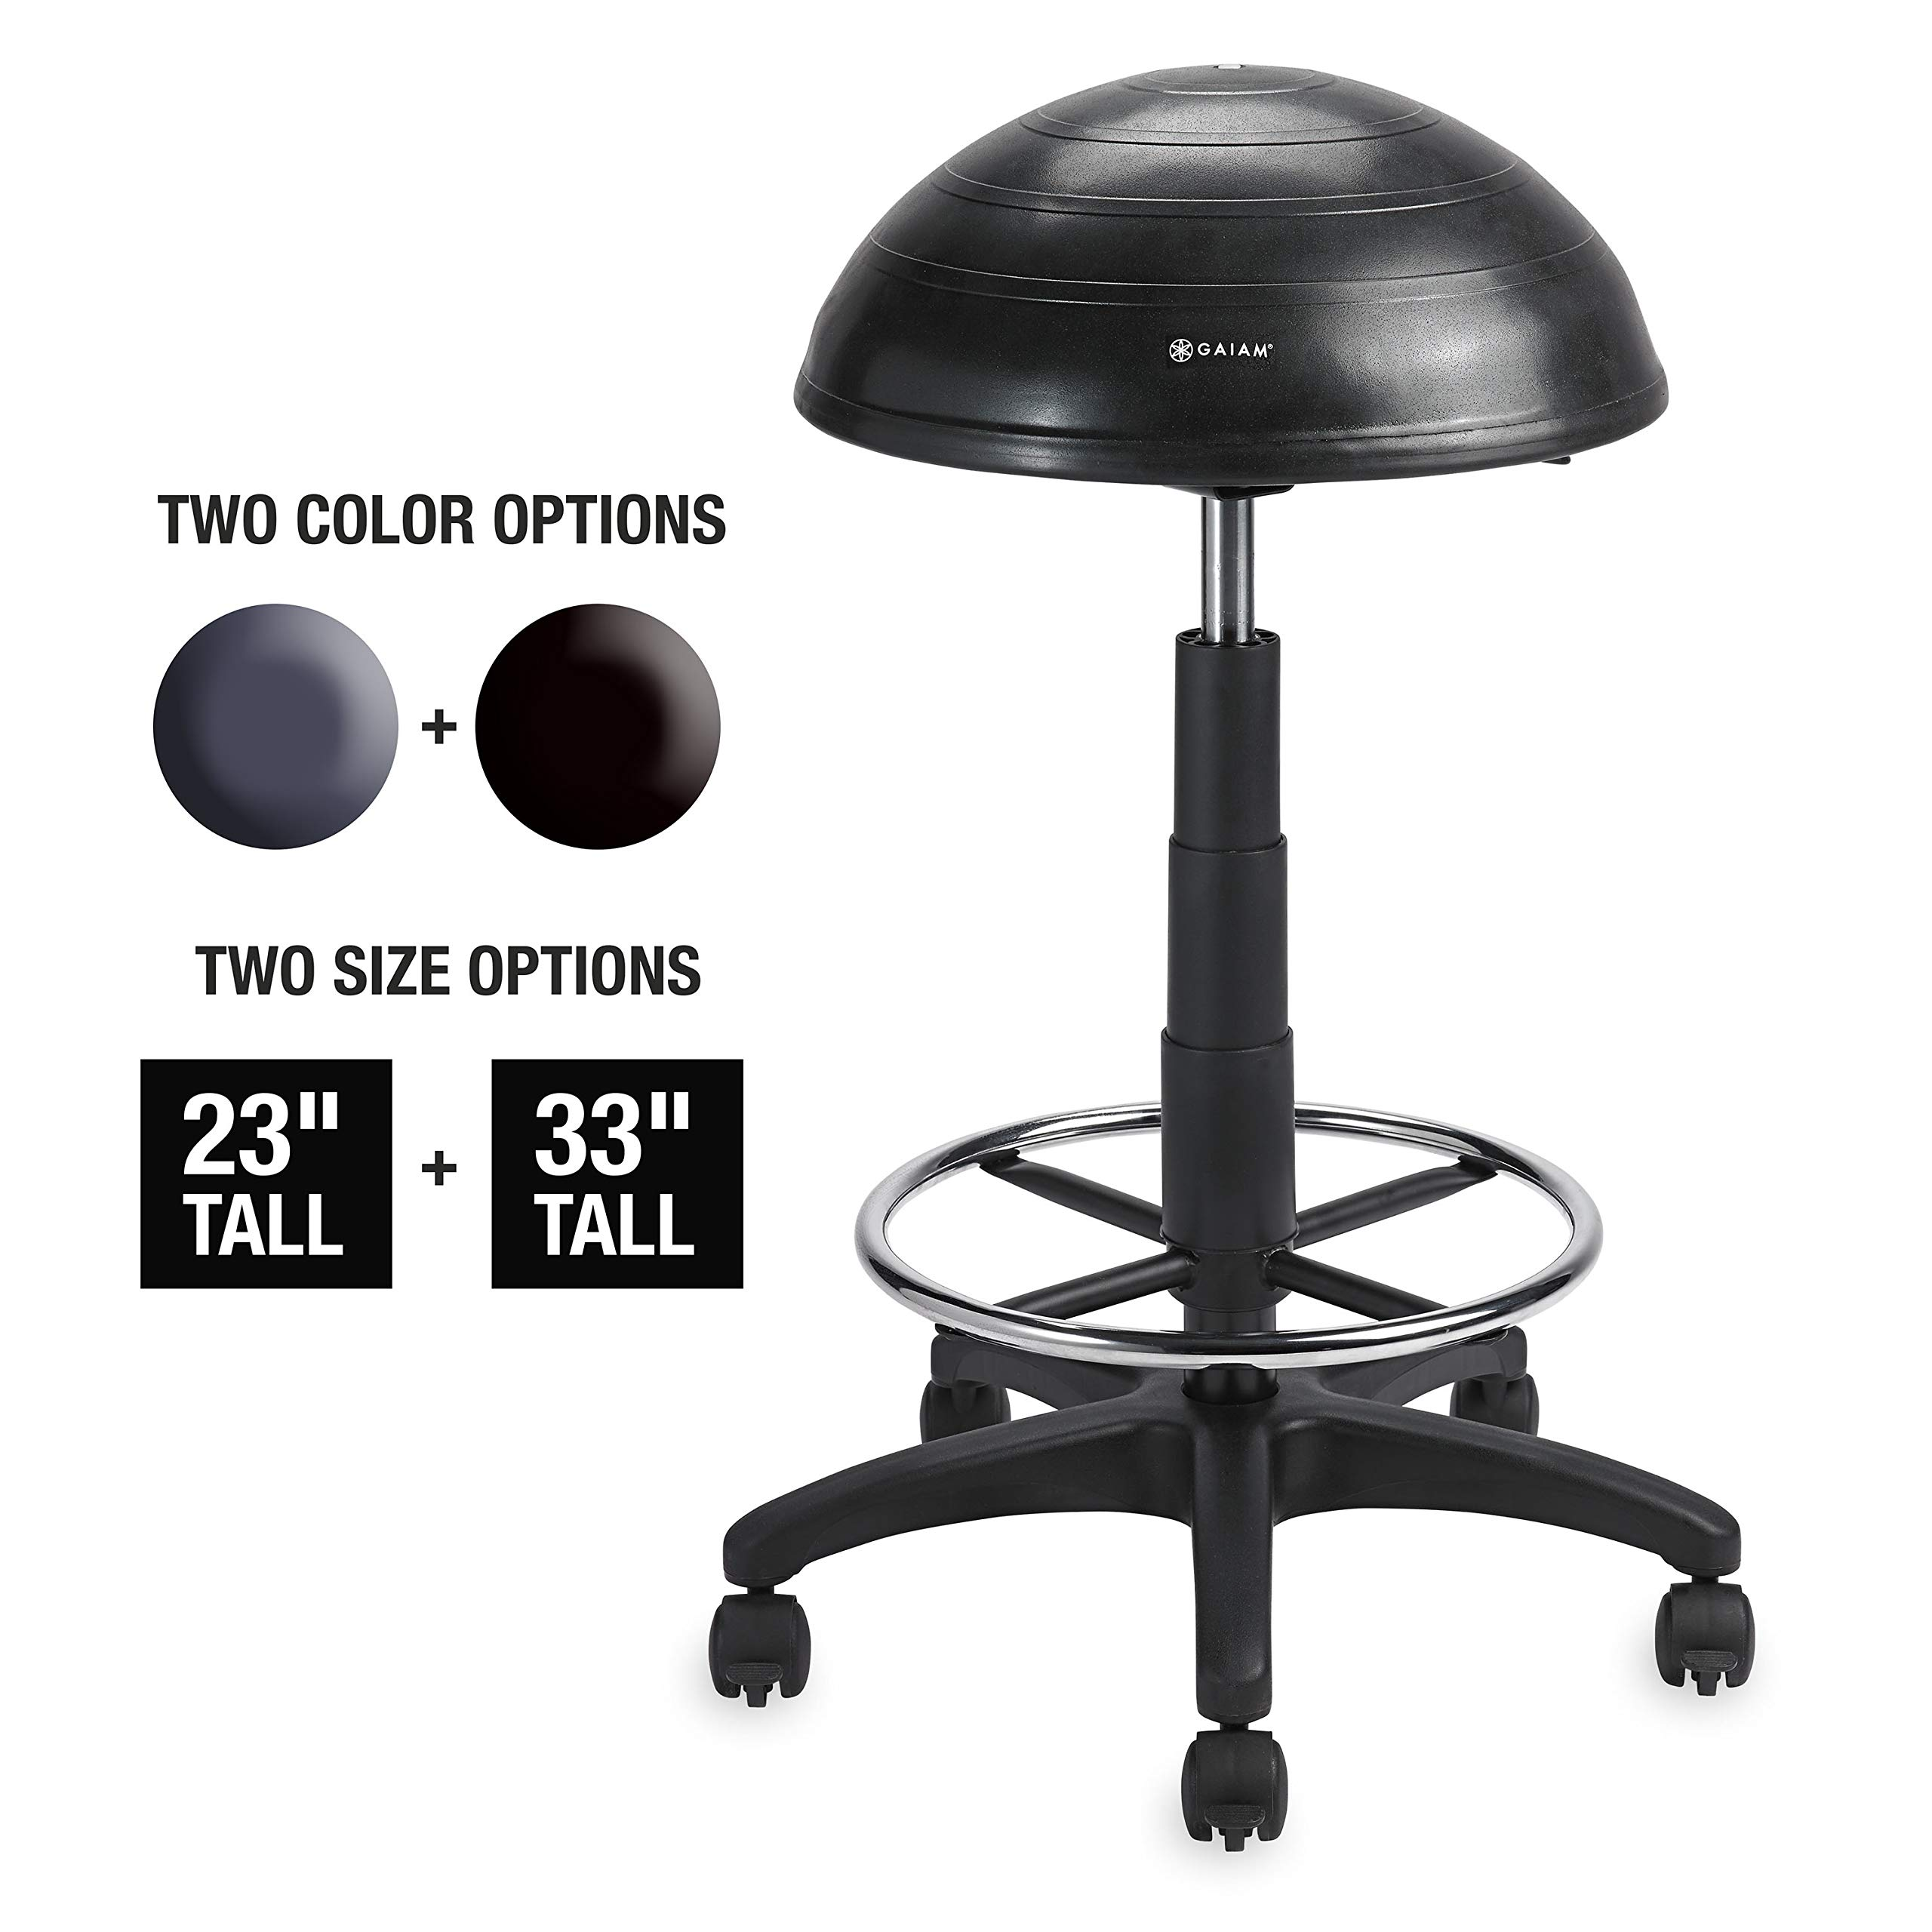 Gaiam Balance Ball Chair Stool, Half-Dome Stability Ball Adjustable Tall Office Sit Stand Swivel Desk Chair Drafting Stool with Round Foot Rest for Standing Desks Home or Office - Black 33 by Gaiam Active Sitting